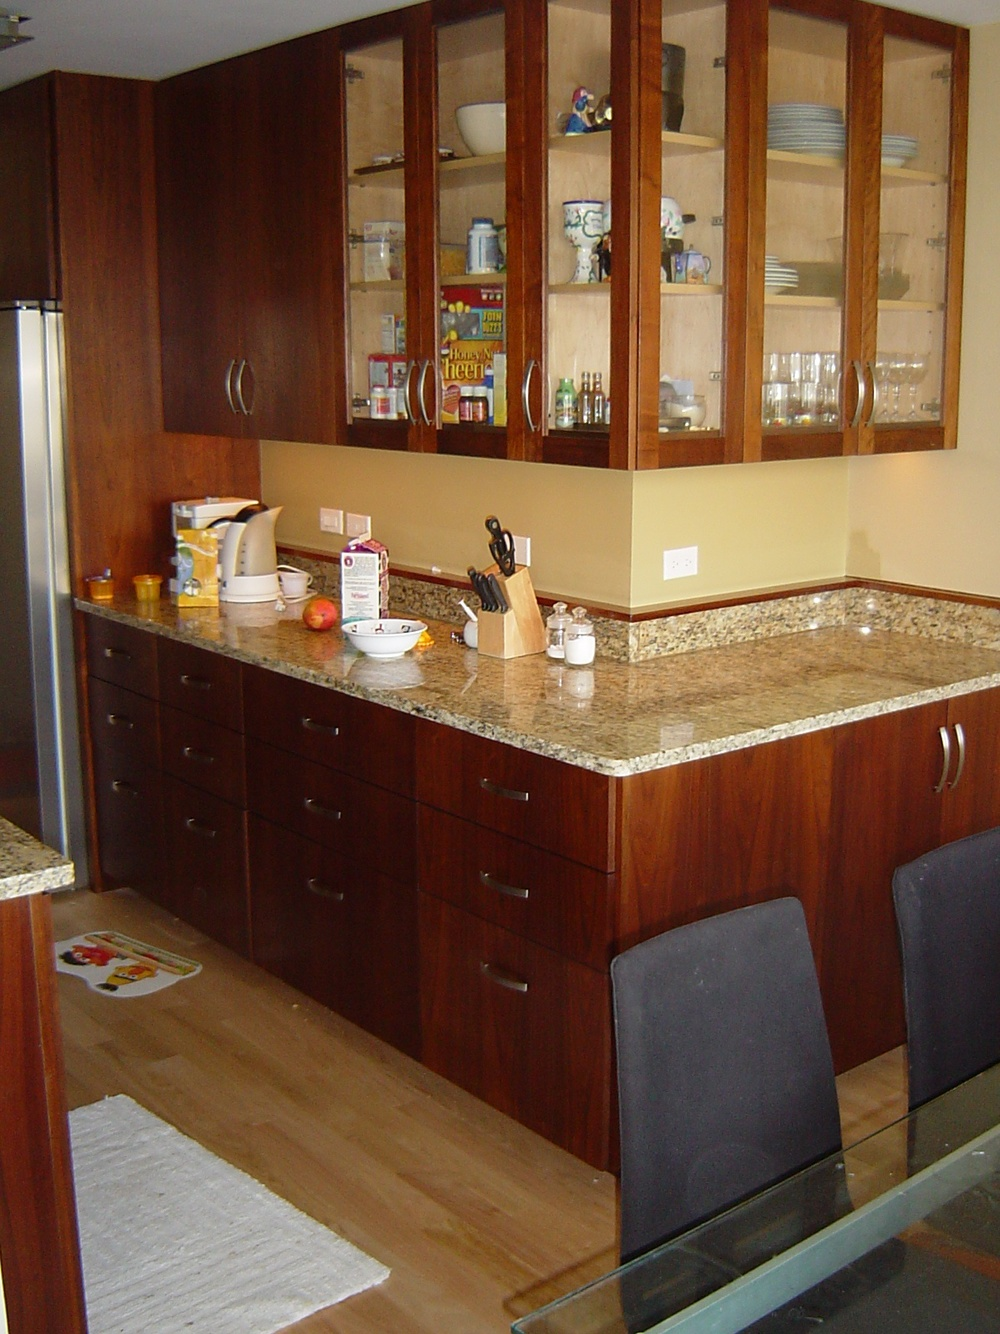 Gadanke Kitchen South.jpg